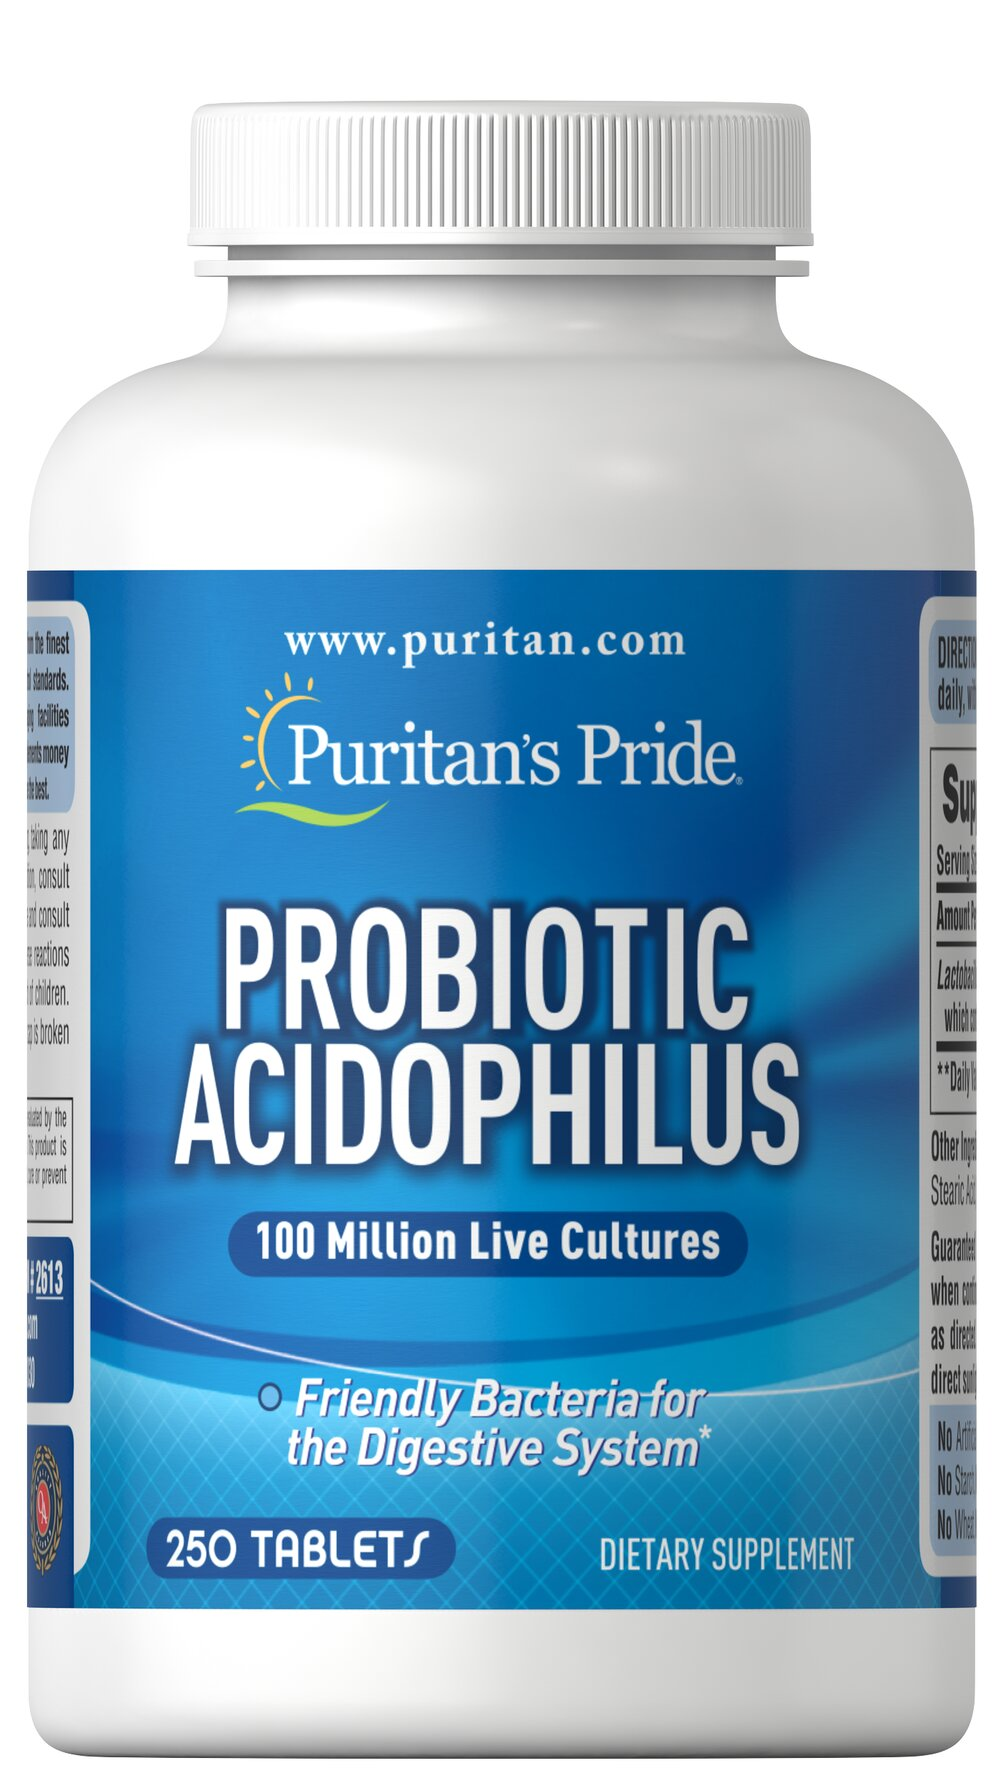 Probiotic Acidophilus <p>Acidophilus is a friendly bacteria naturally found in the intestinal tract.** More than 400 species of bacteria, also called normal flora, live in the adult human GI tract.  Our Probiotic Acidophilus contains over 100 million active Lactobacillus Acidophilus (including the naturally occurring metabolic product produced by Lactobacilli) at the time of manufacture. Adults can take one (1) capsule daily, preferably with a meal.</p> 250 Capsules  $18.99